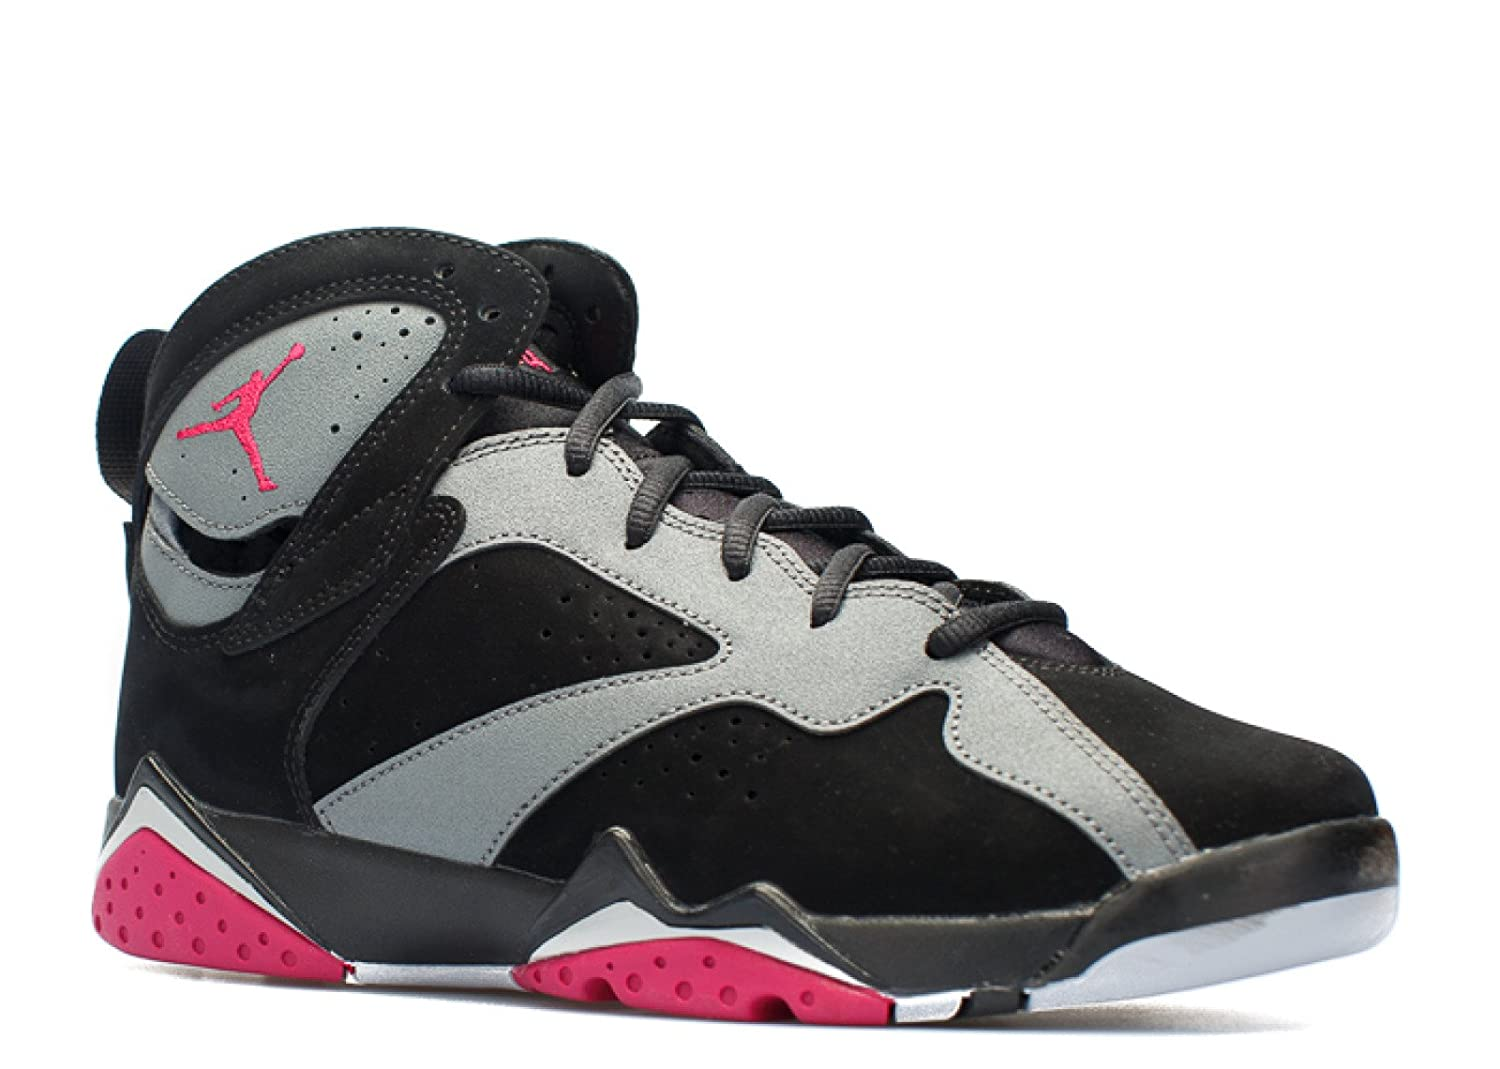 ad8b1718795 Amazon.com | Nike Boys Air Jordan 7 Retro GG Sport Fuchsia Black/Sport  Fuchsia-Cool Grey Suede Size 7Y | Basketball